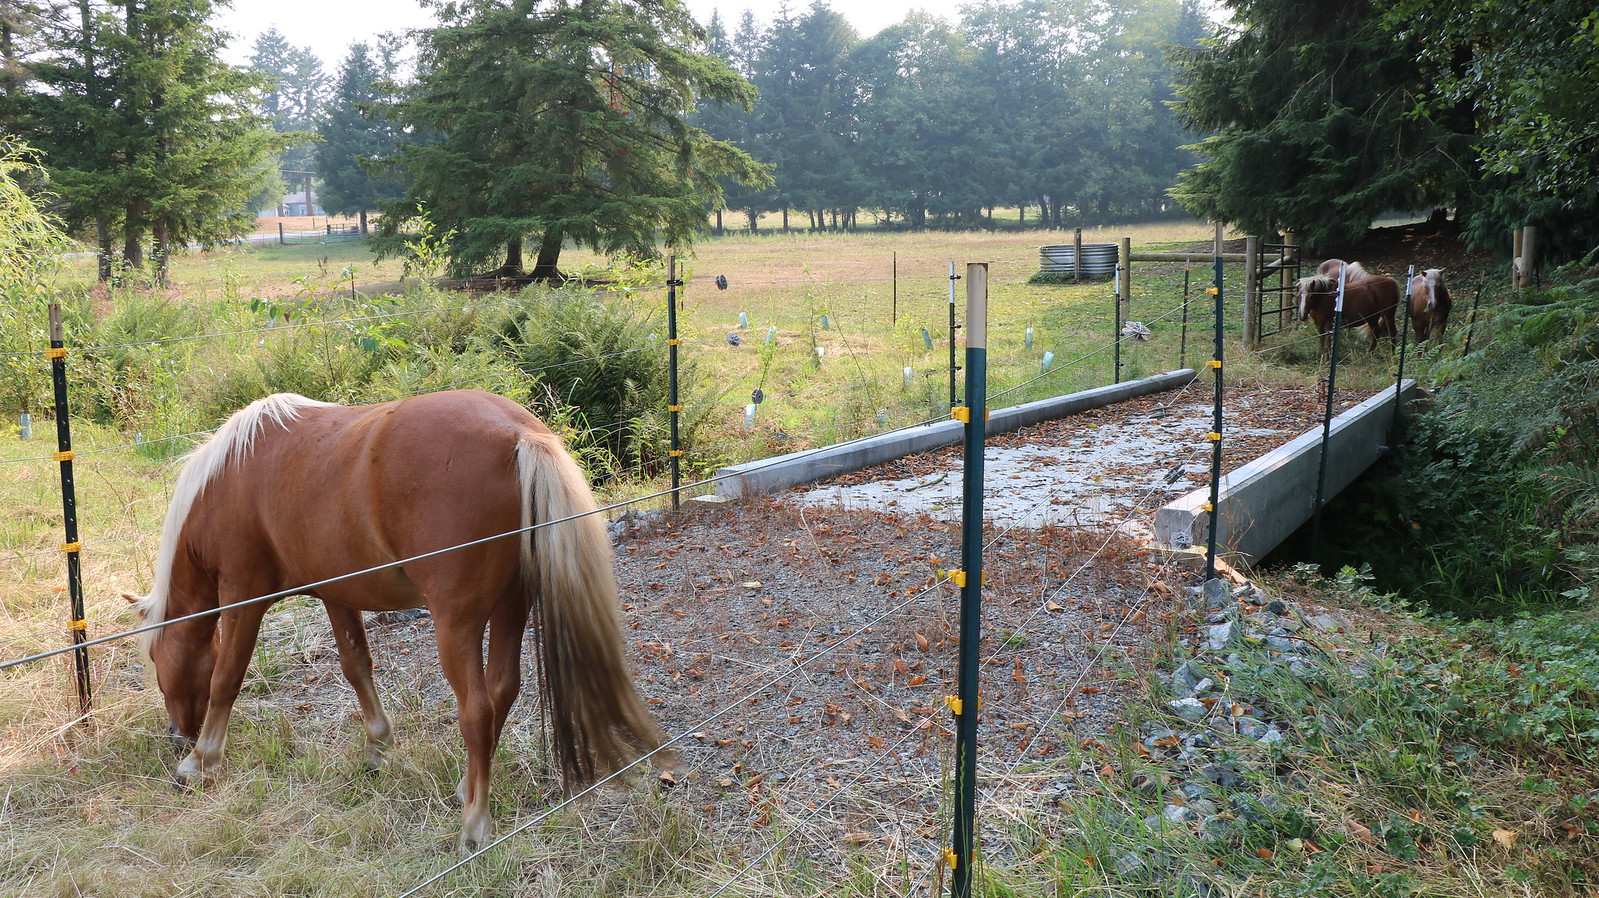 Horses are kept out of the creek with exclusion fencing and a bridge in the Stillaguamish watershed.